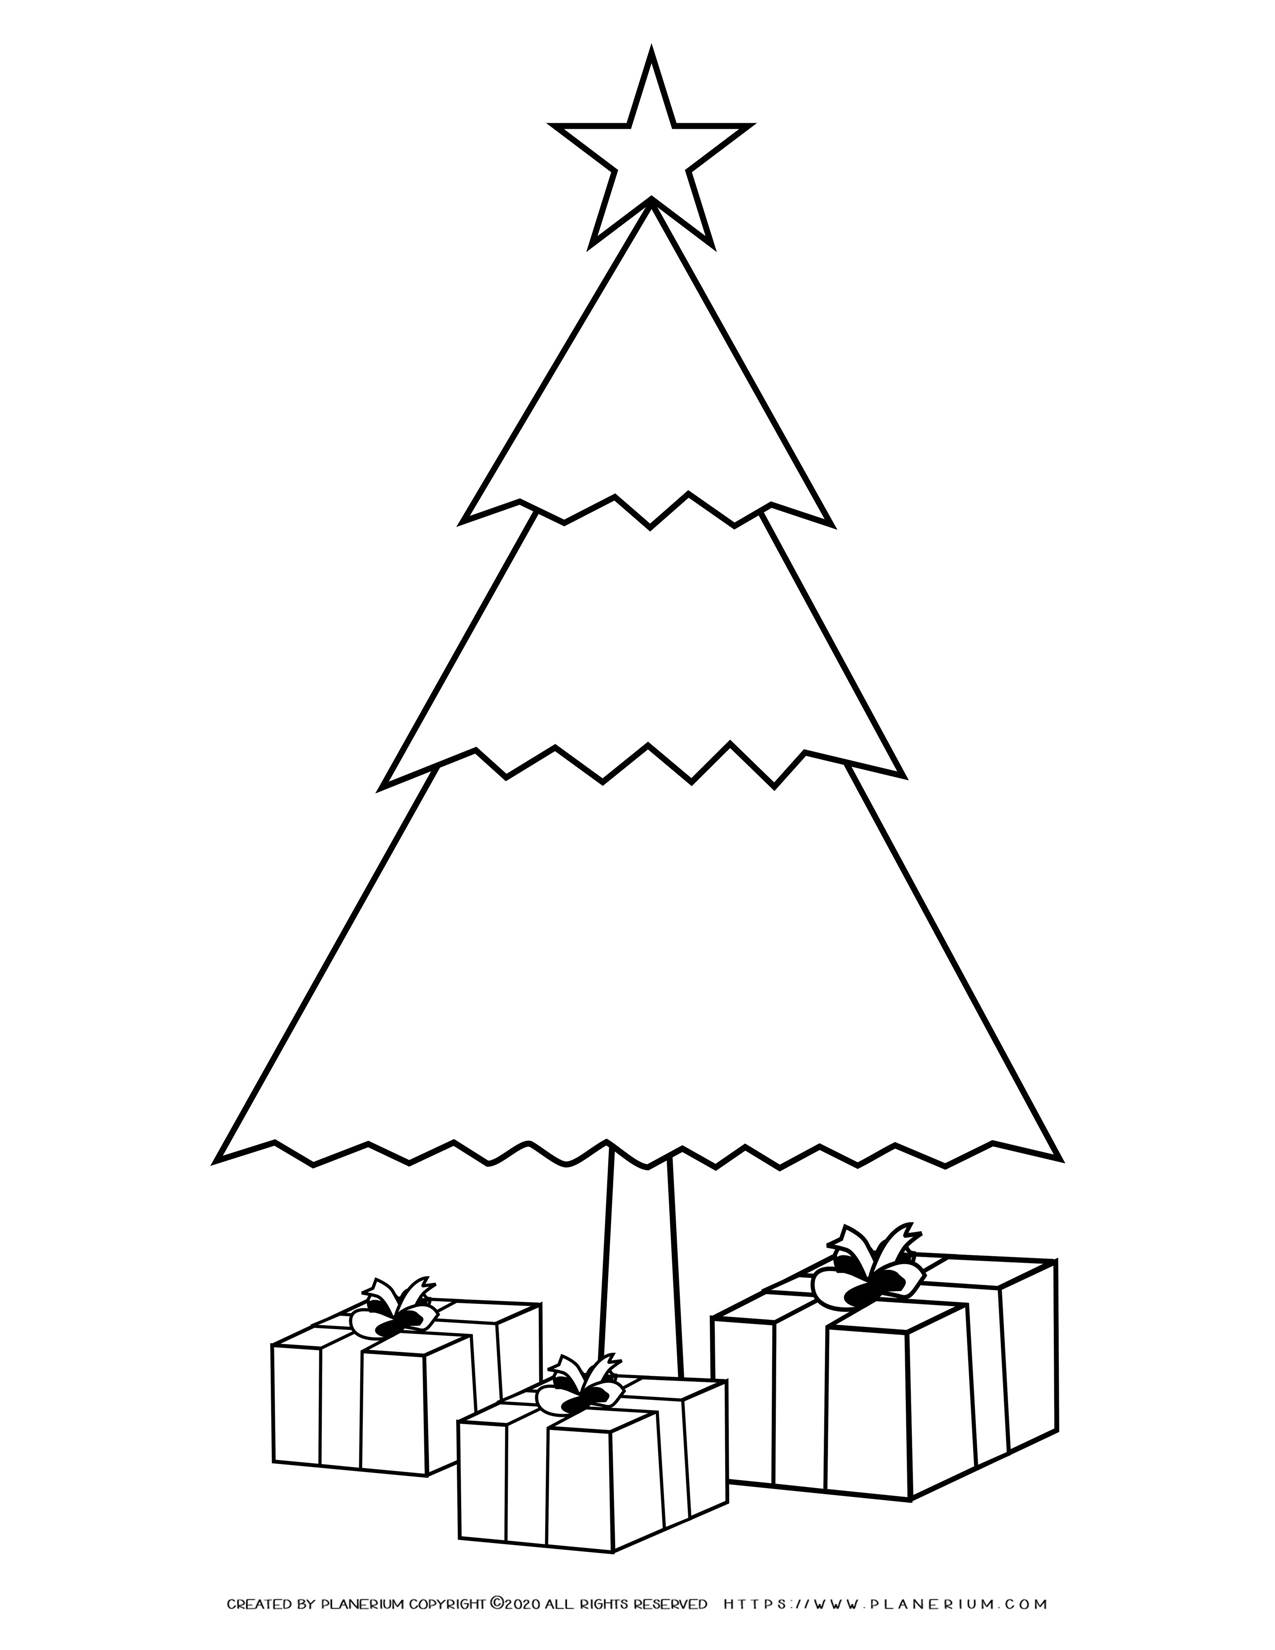 Christmas Tree with Presents Coloring Page | Free Printables | Planerium